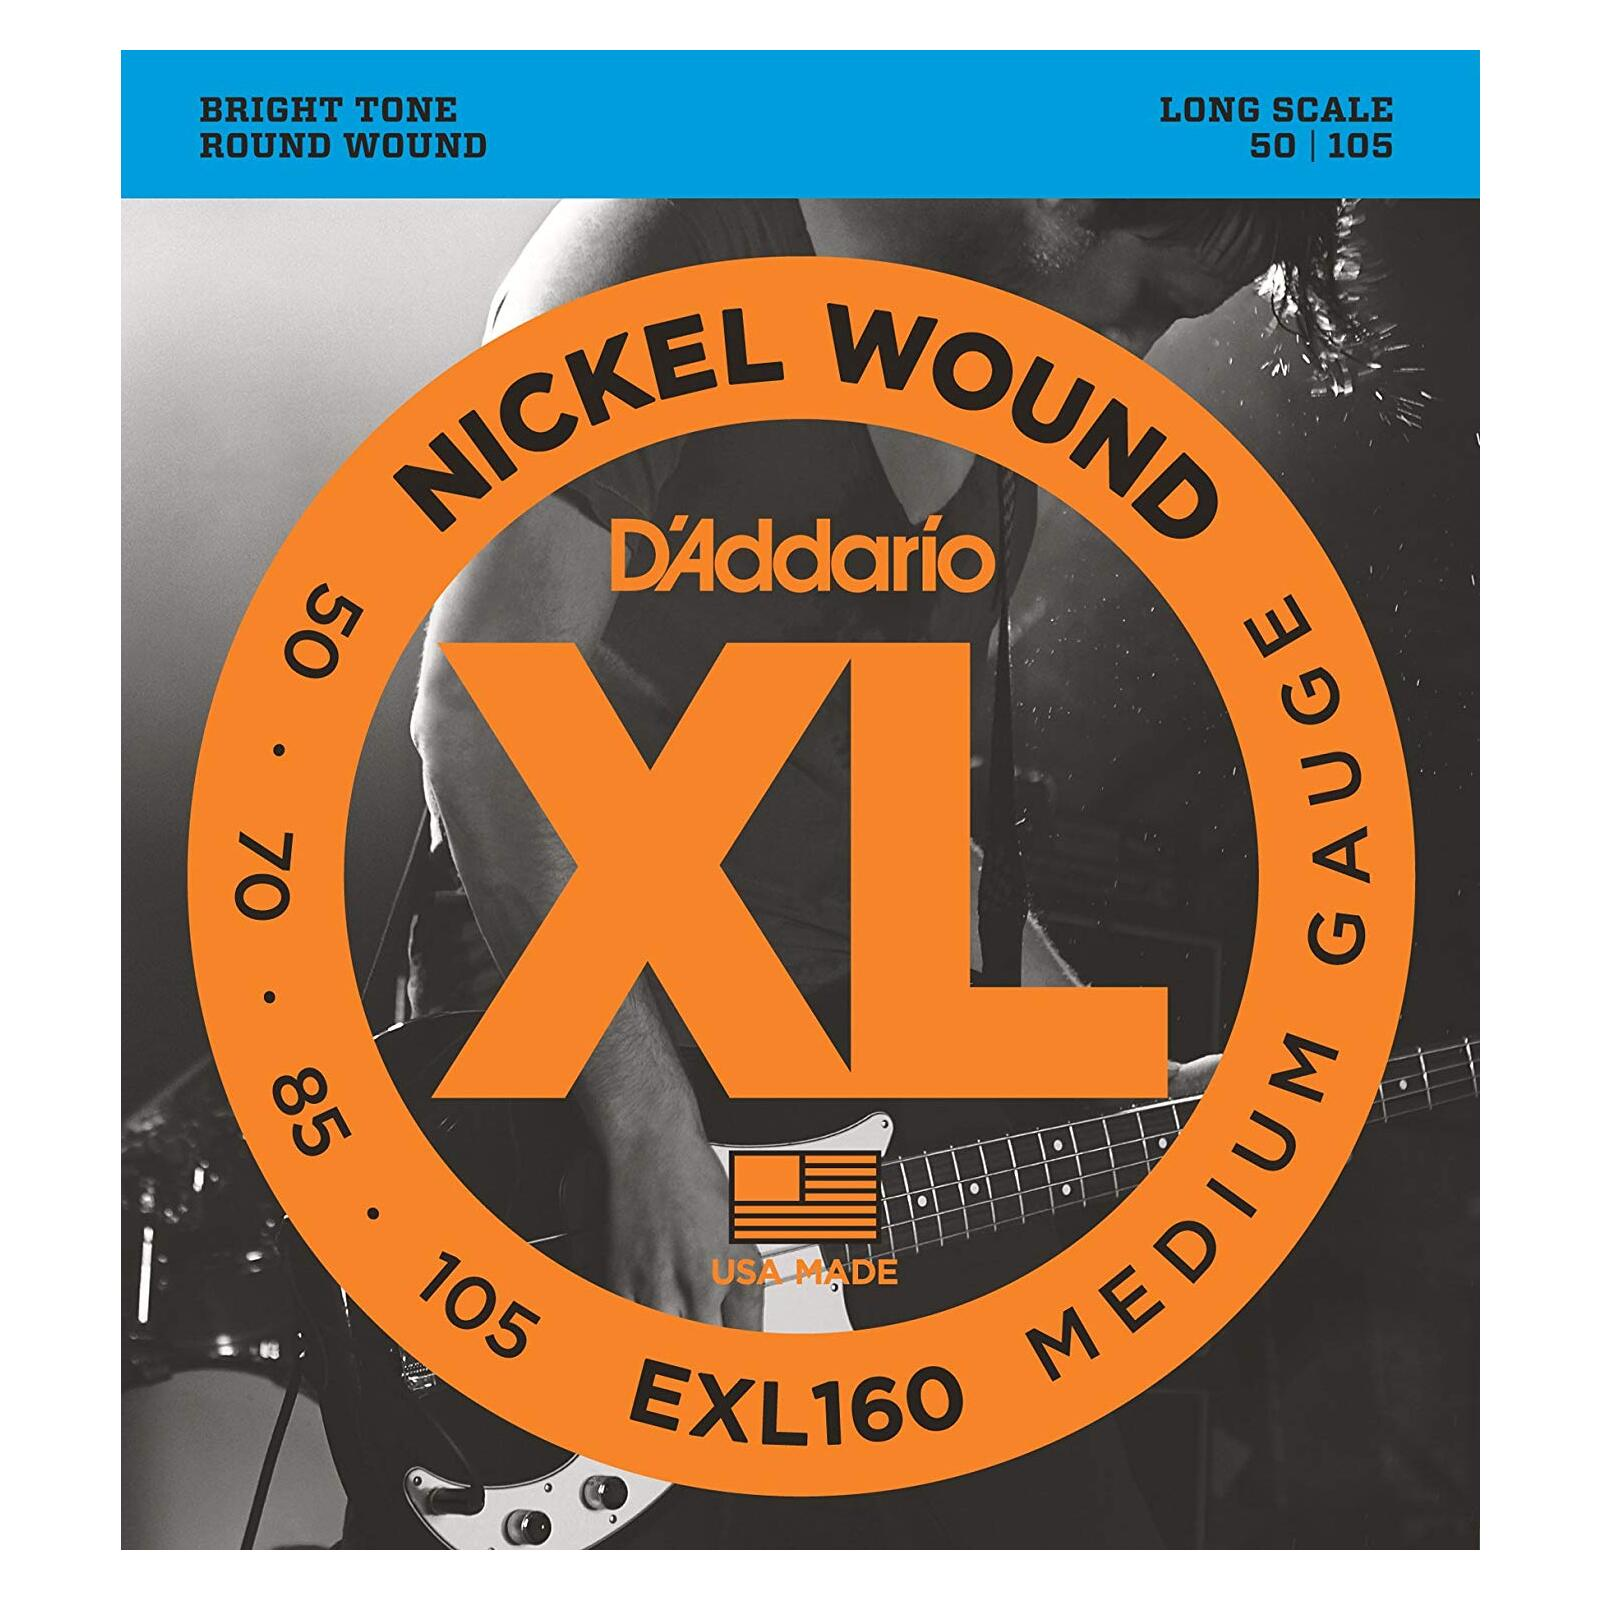 DADDARIO EXL160 50-105 BASS STRINGS